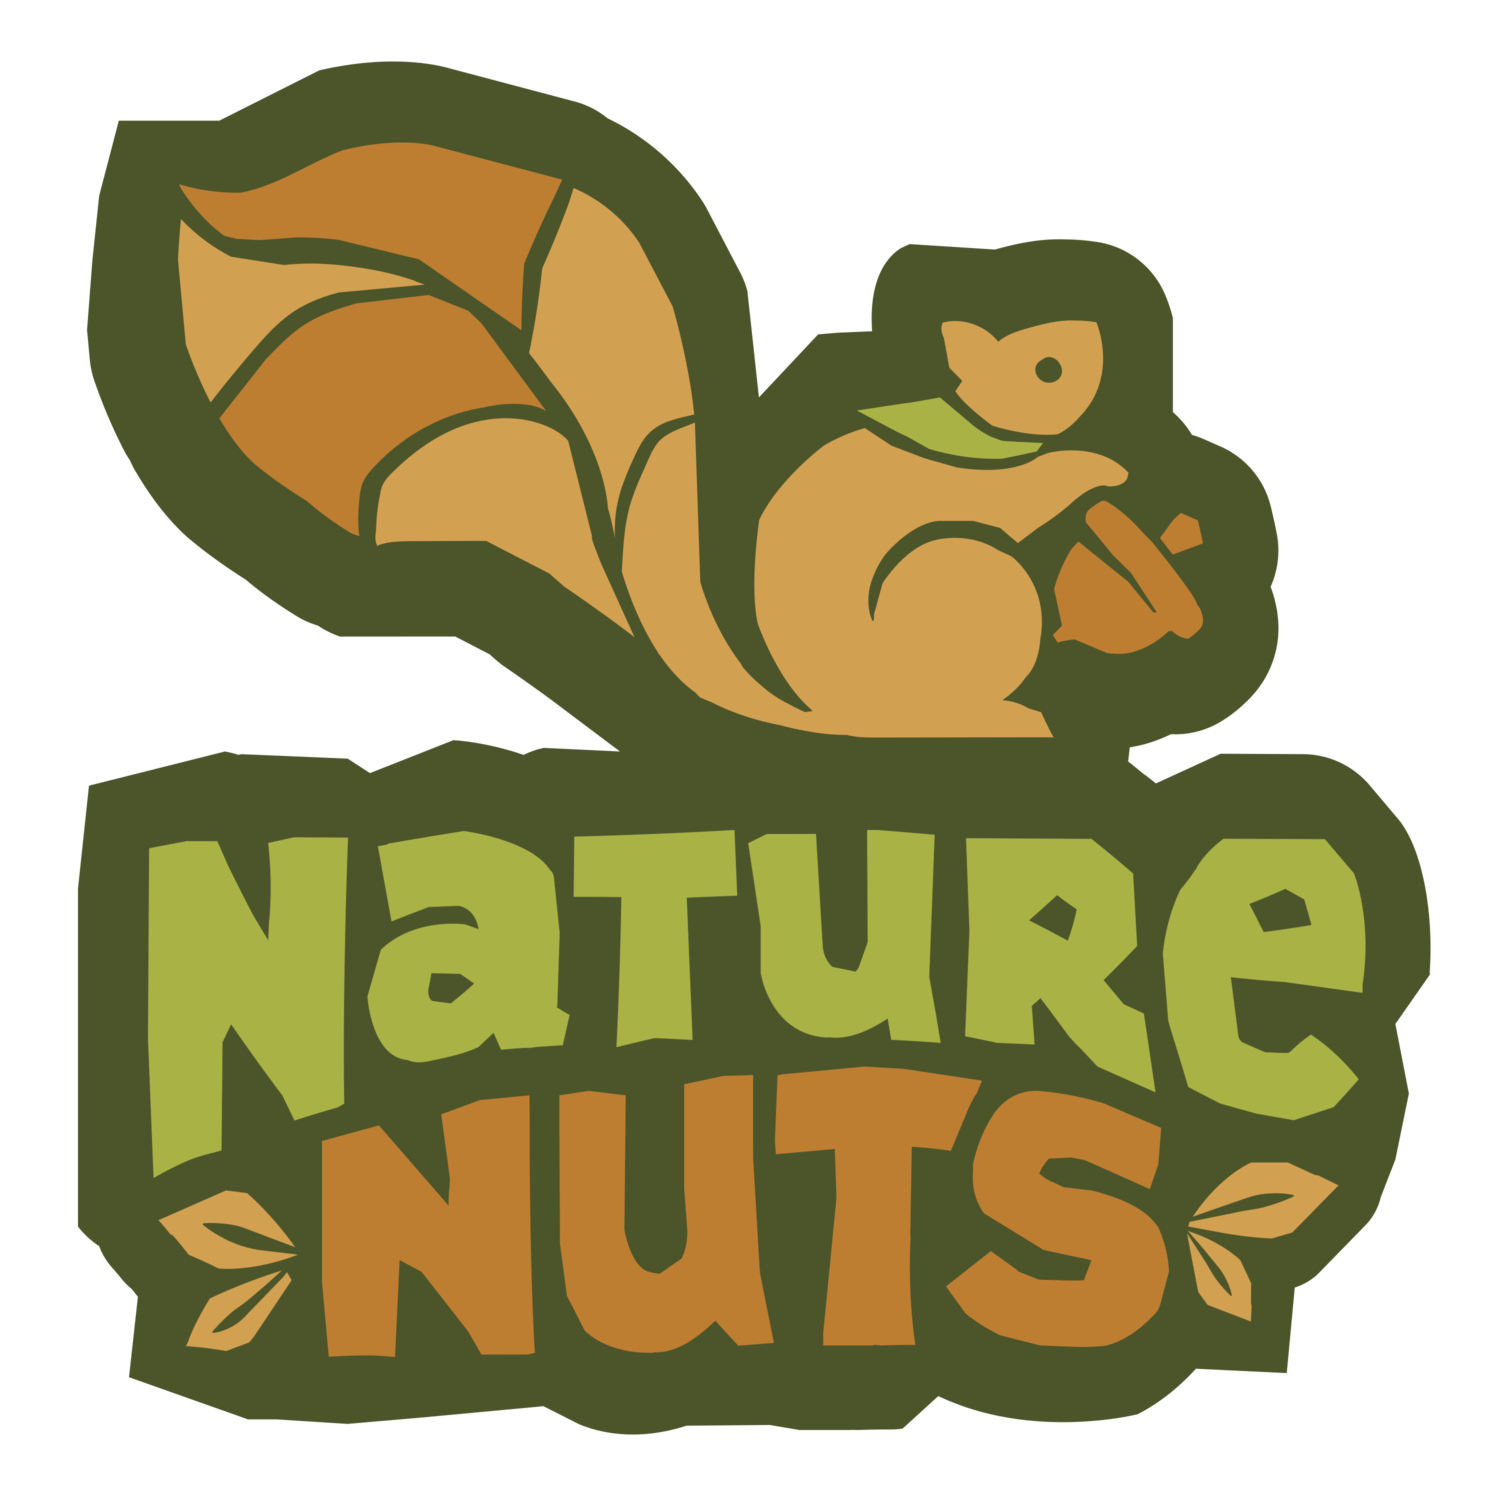 Ticket clipart single. Forest school nature nuts